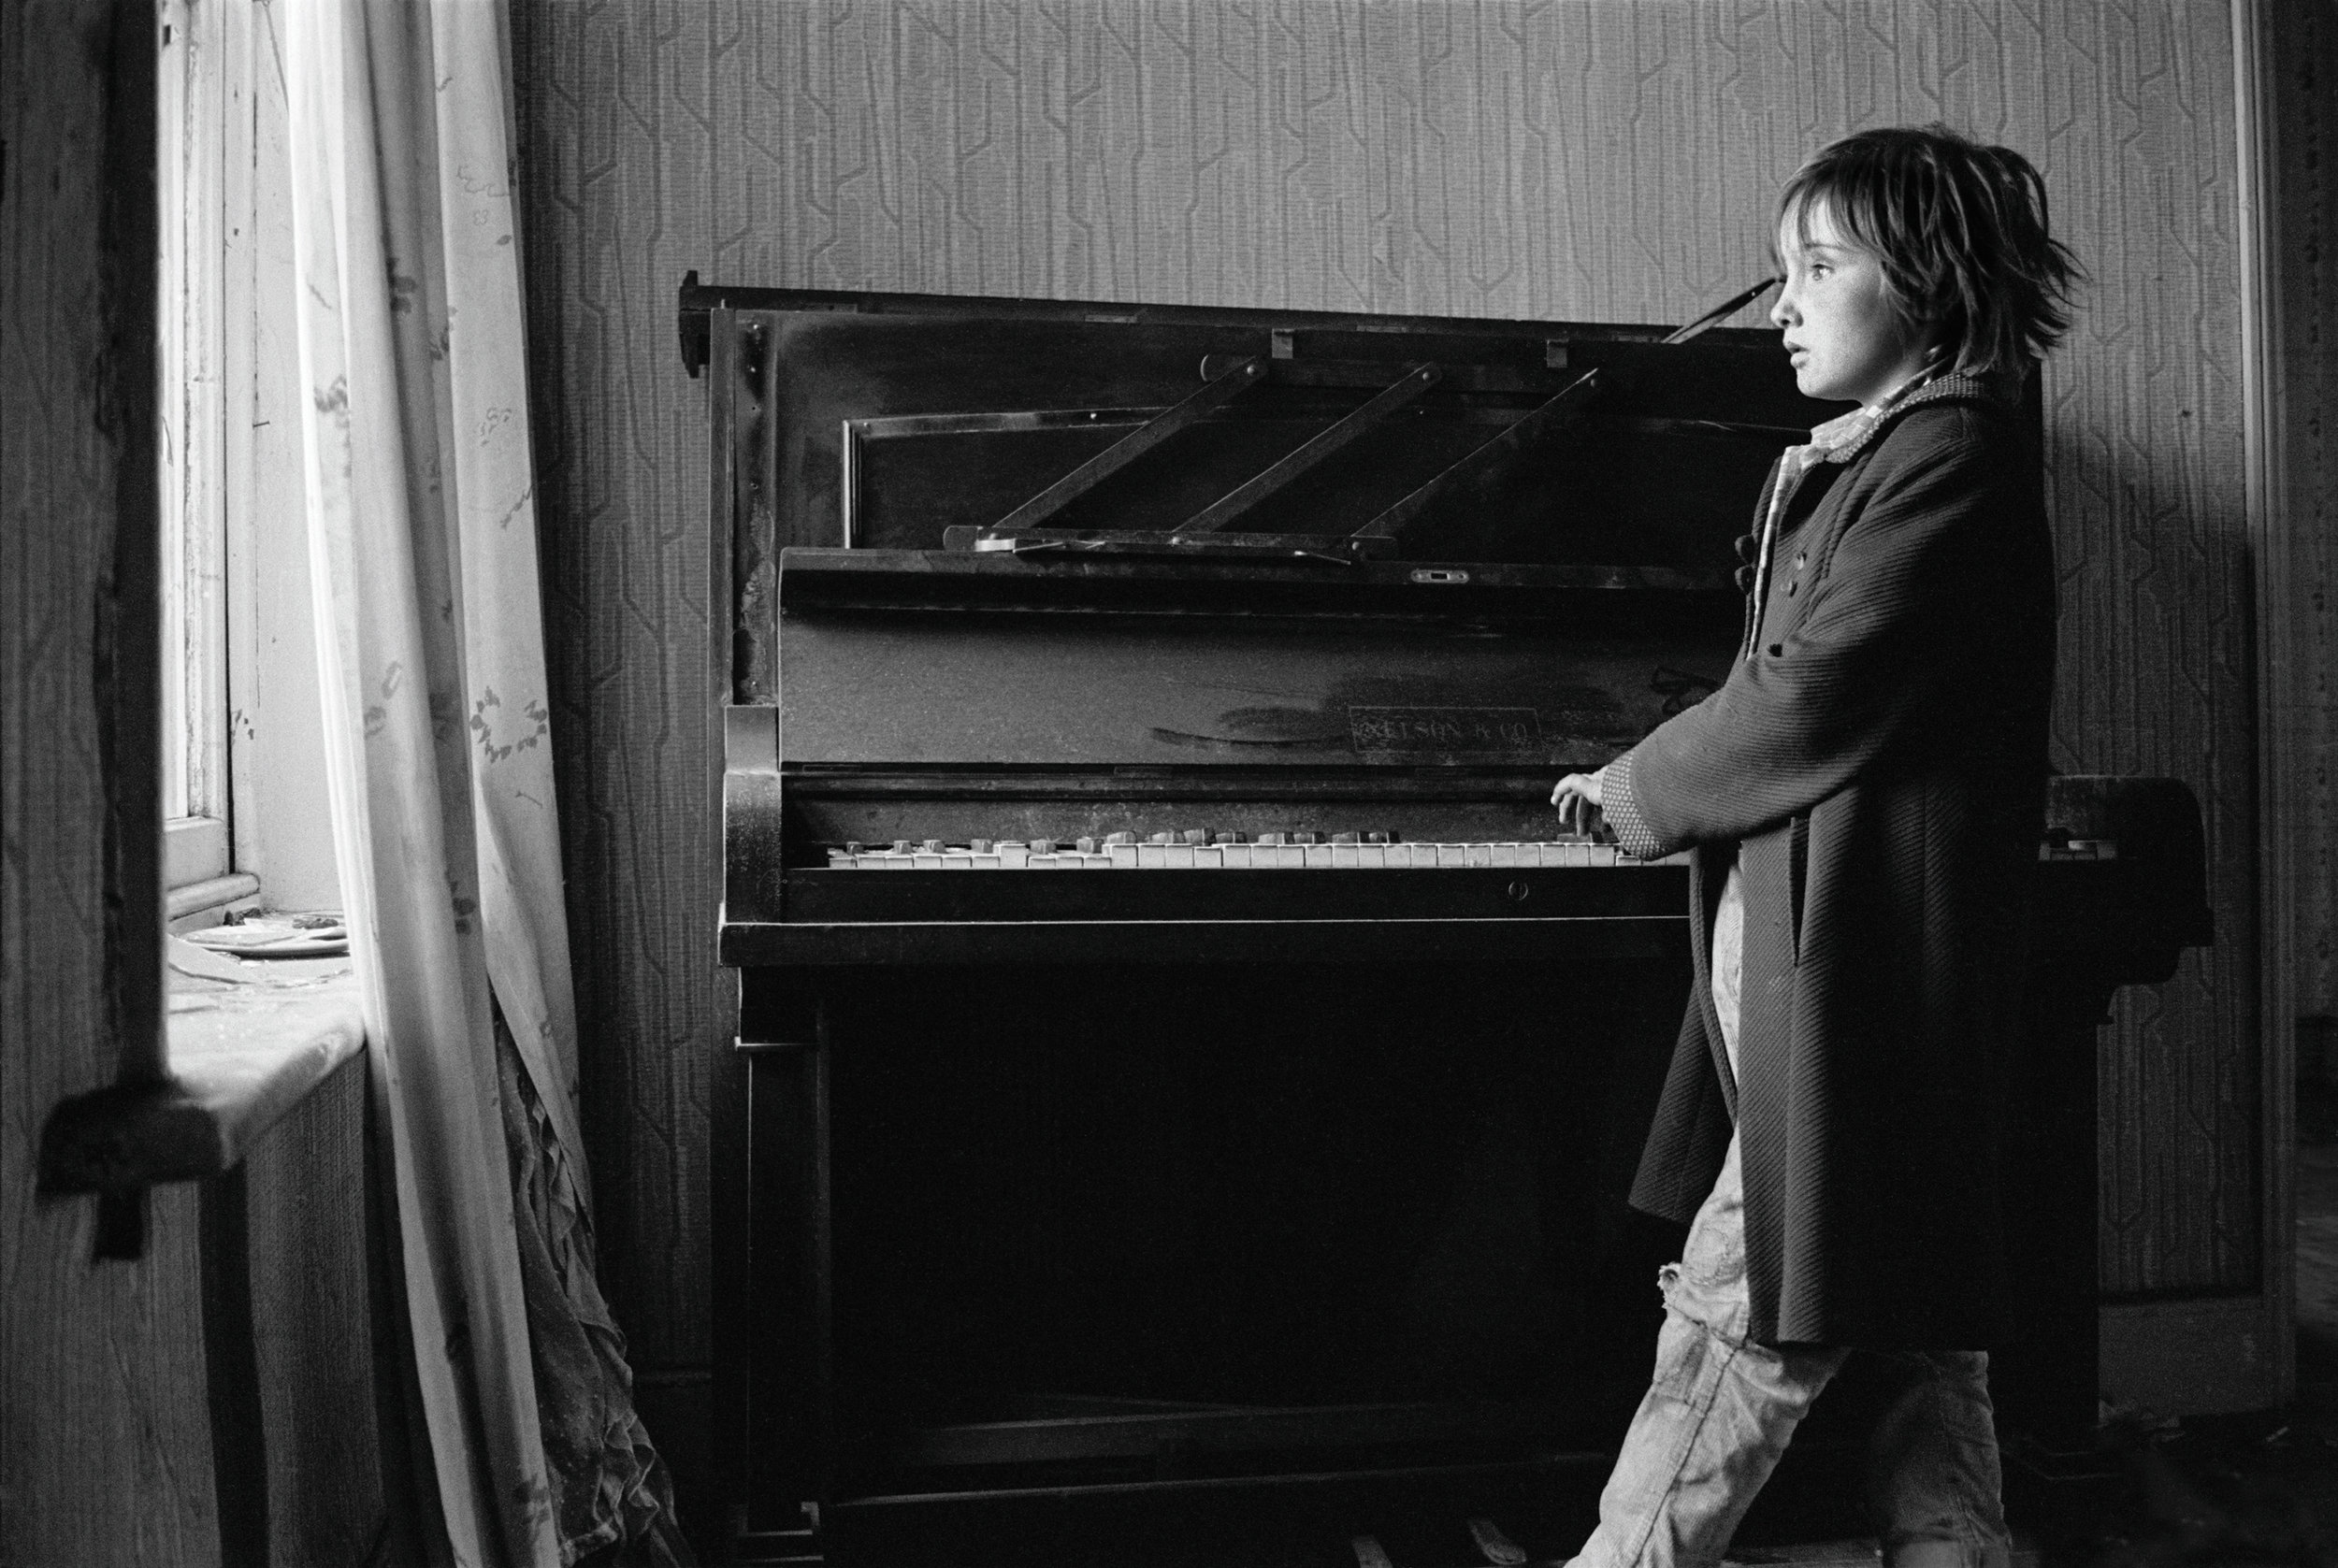 Heather Playing a Piano in a Derelict House, 1971